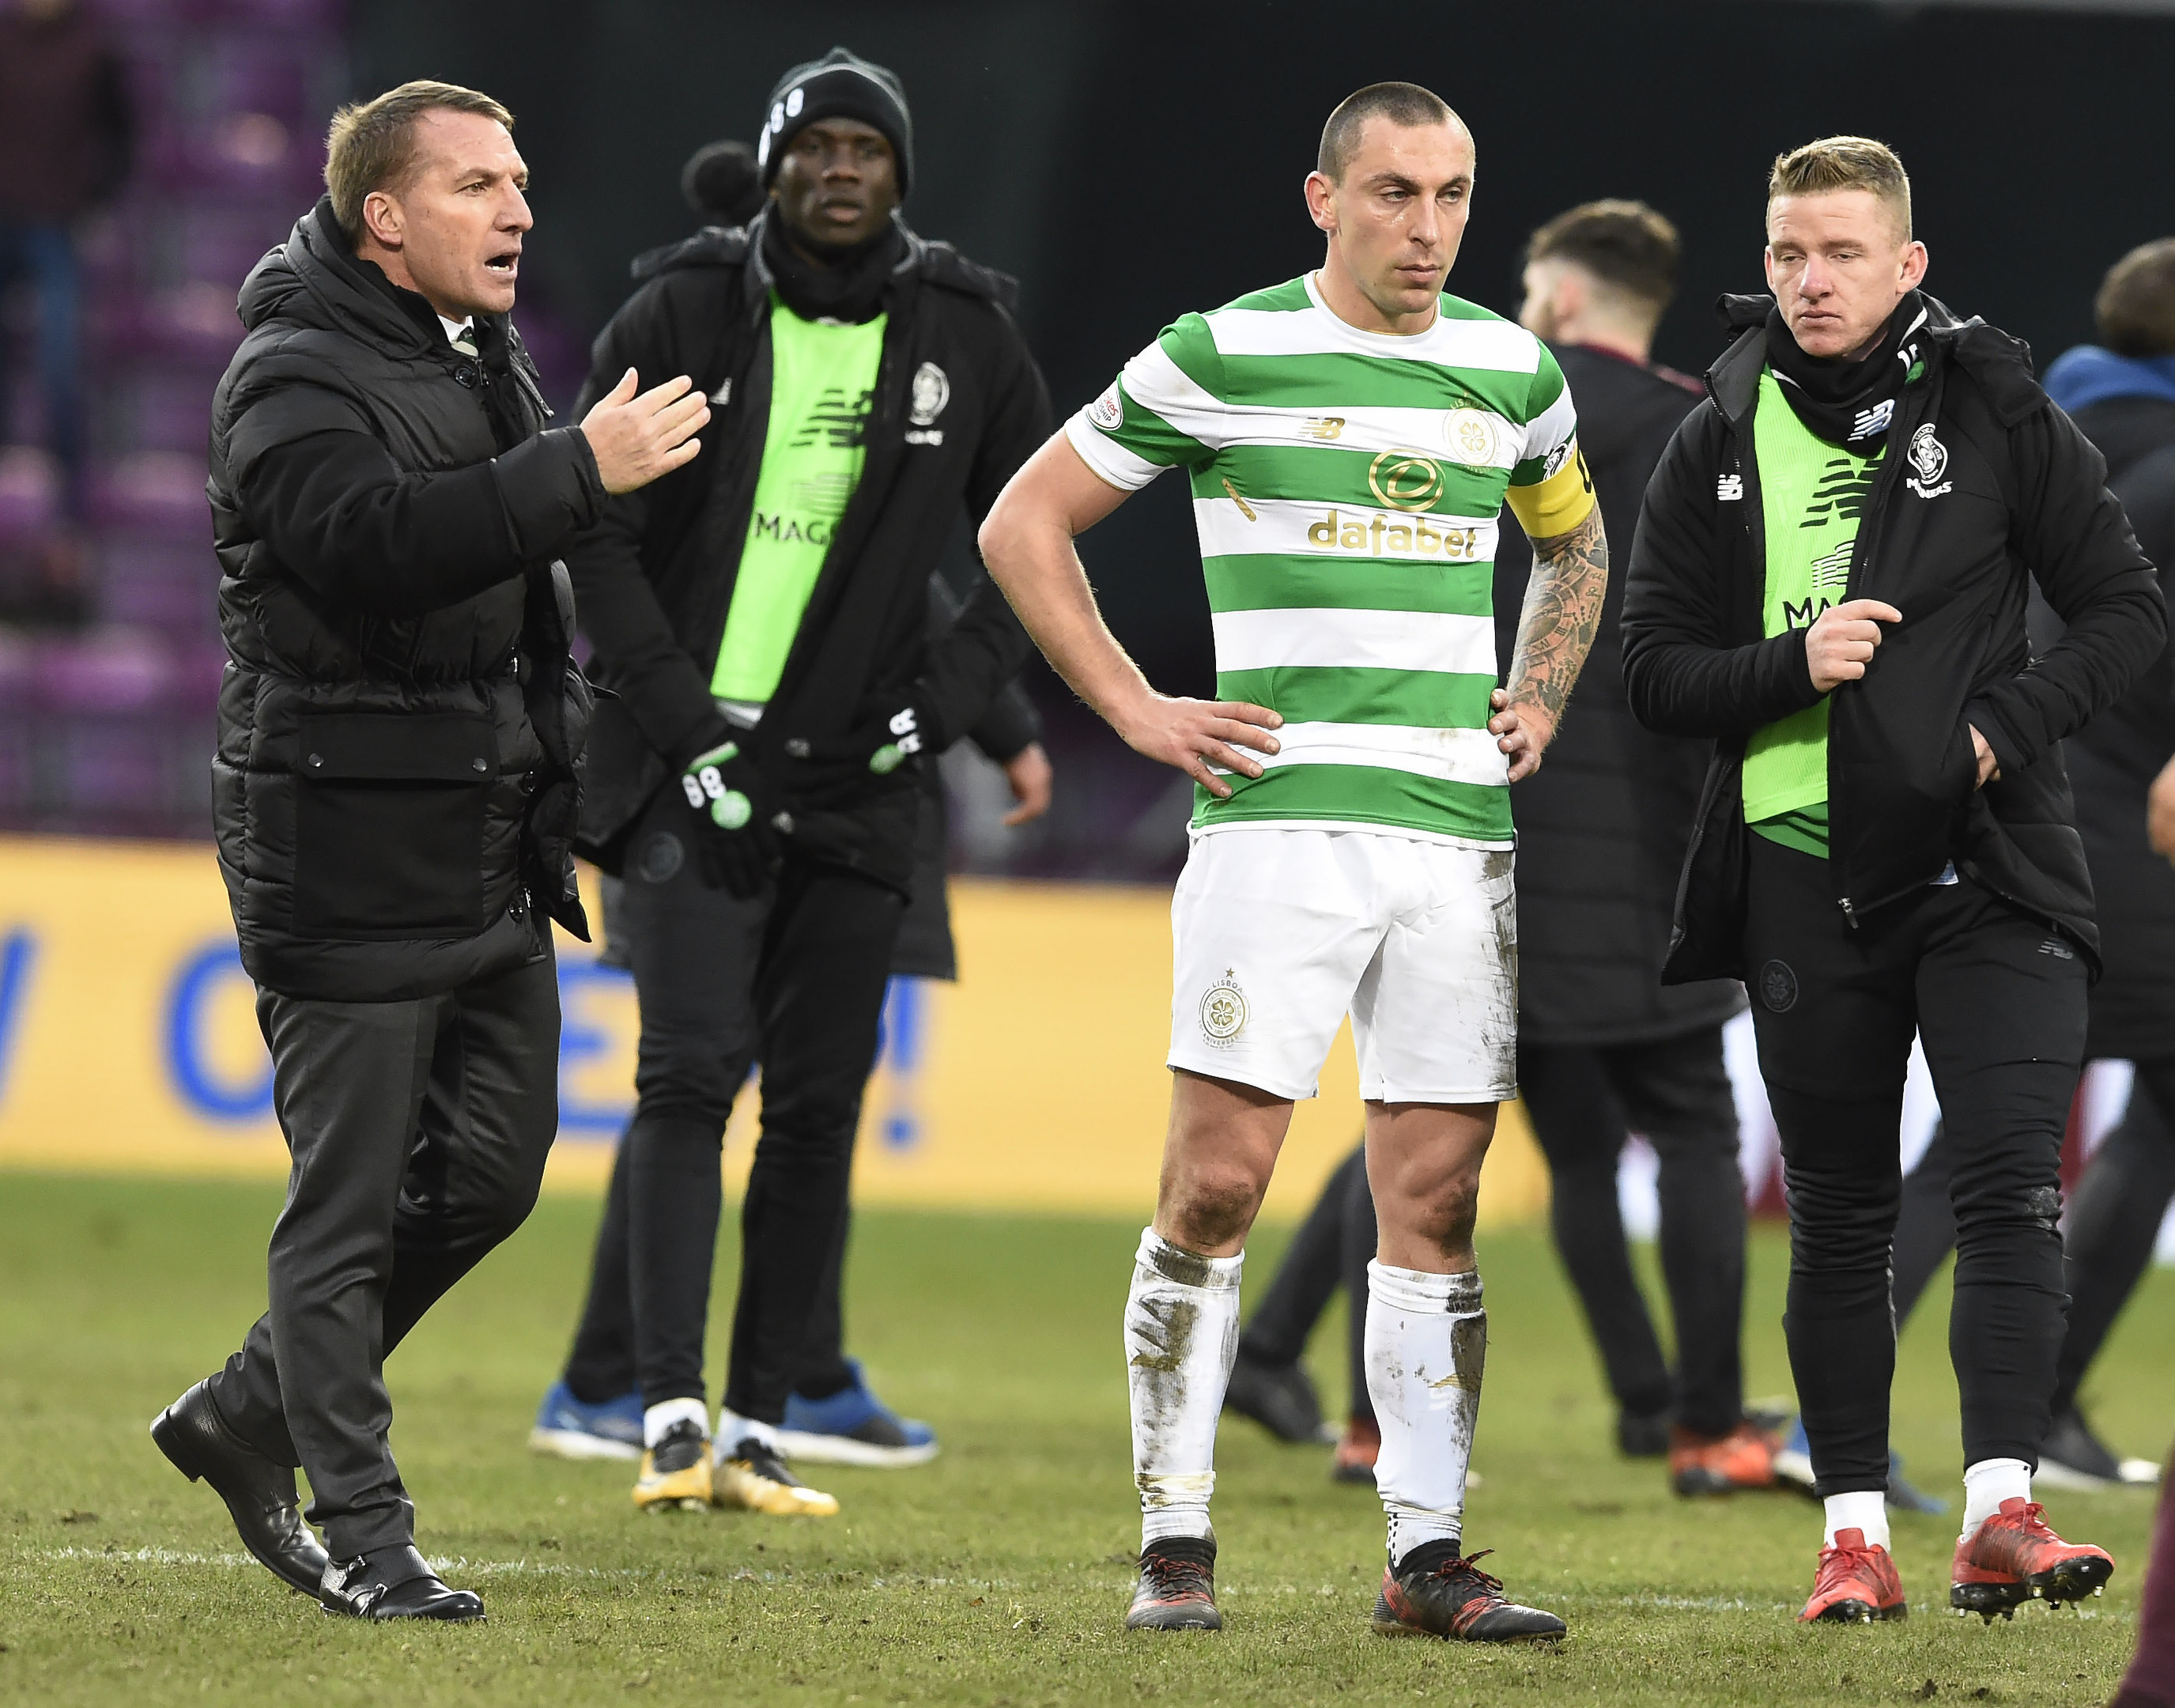 Celtic manager Brendan Rodgers and Scott Brown after the final whistle of the Ladbrokes Scottish Premiership match at Tynecastle.